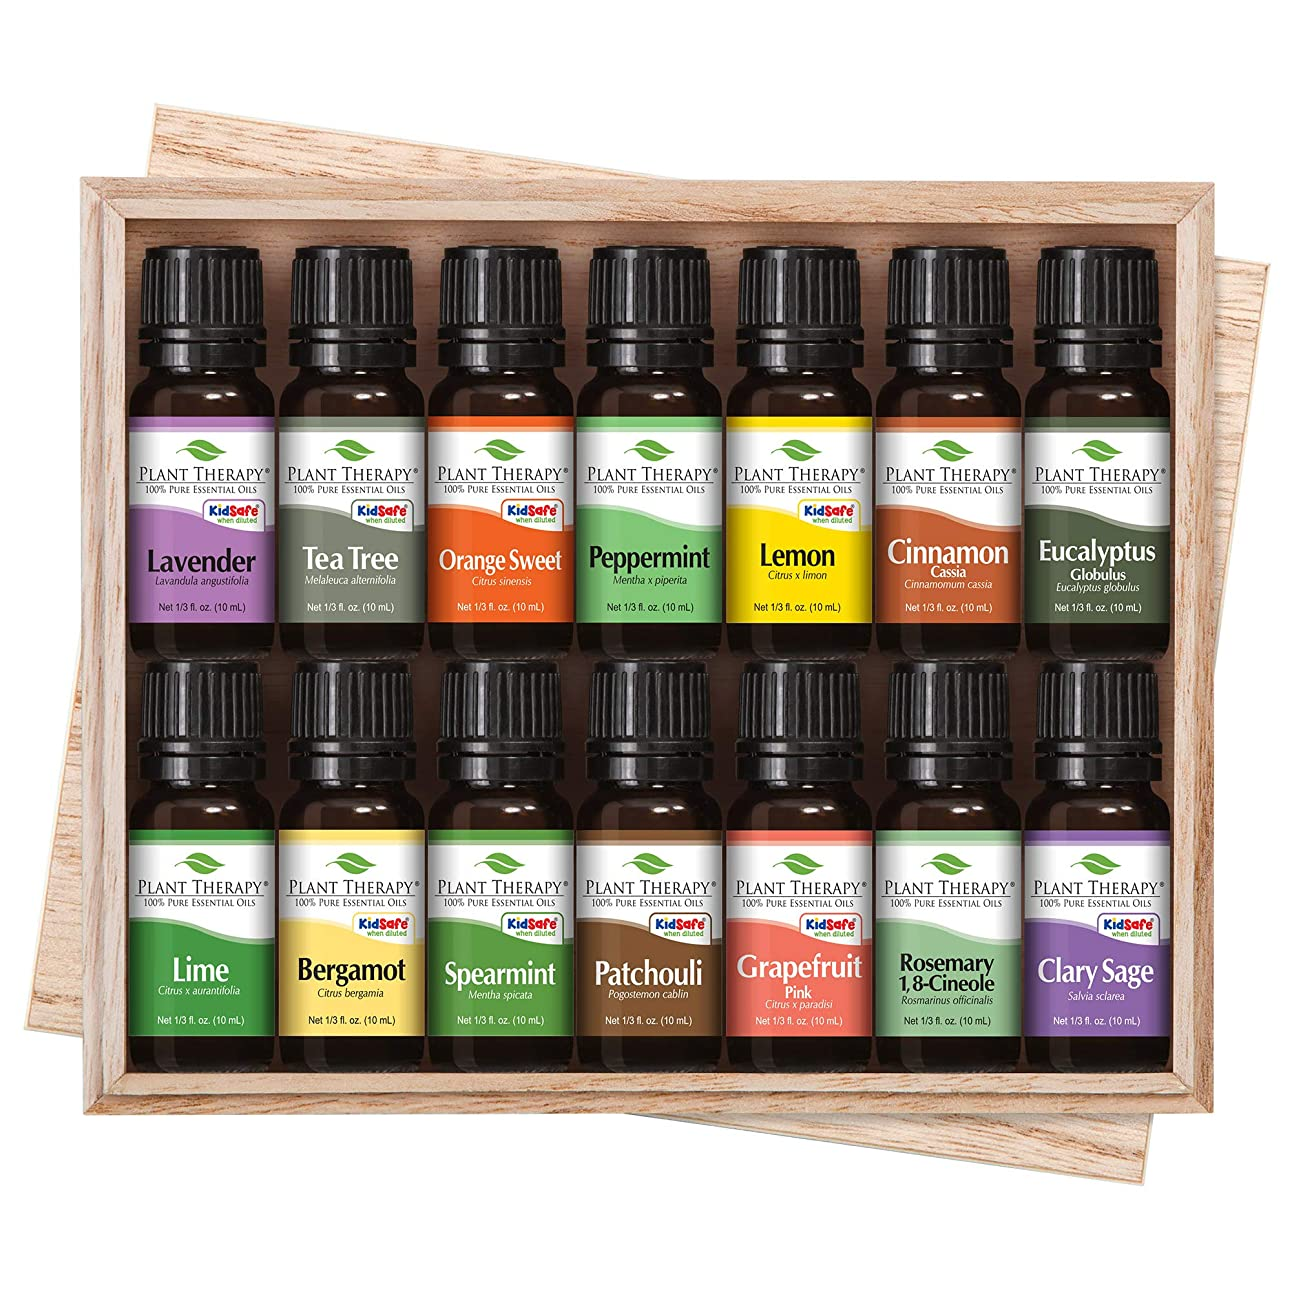 破産スポーツをする窓Top 14 Essential Oil Set. Includes 100% Pure, Therapeutic Grade Oils of Bergamot, Clary Sage, Cinnamon, Eucalyptus, Grapefruit, Lavender, Lemon, Lime, Patchouli, Peppermint, Rosemary, Spearmint, Orange & Tea Tree. 10 ml each. by Plant Therapy Essential Oils